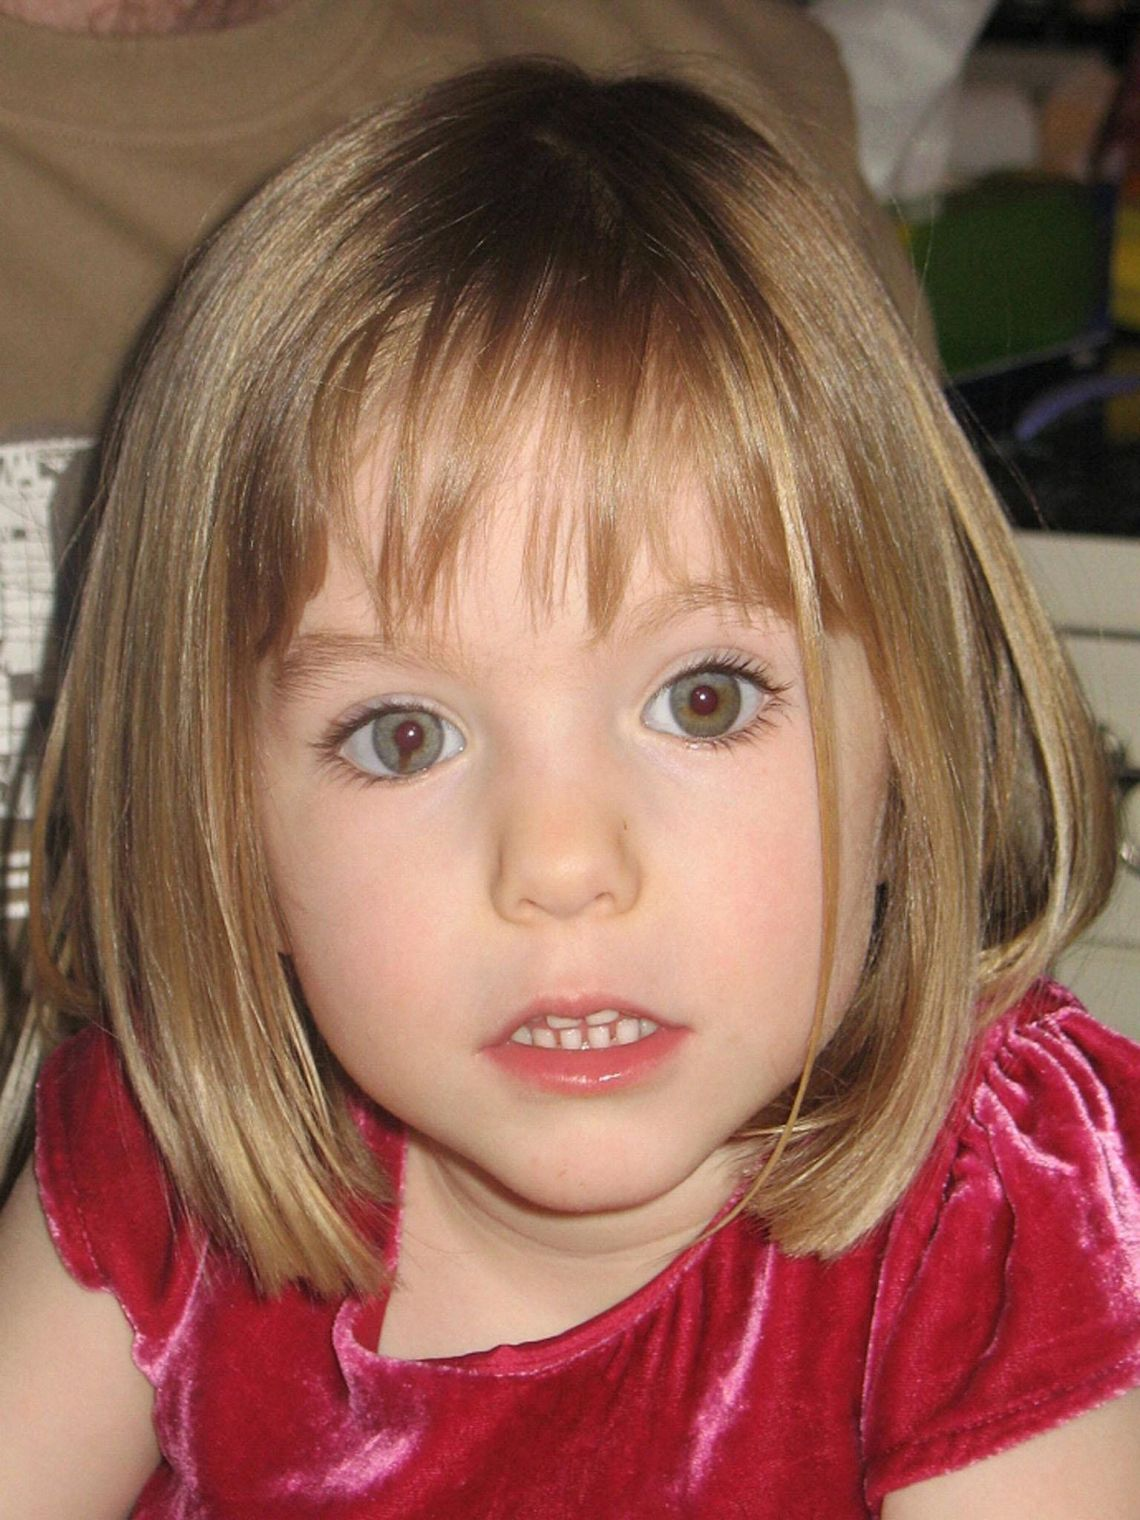 The search for Madeleine McCann will continue after the Home Office granted a further £150,000 in funds to Scotland Yard.